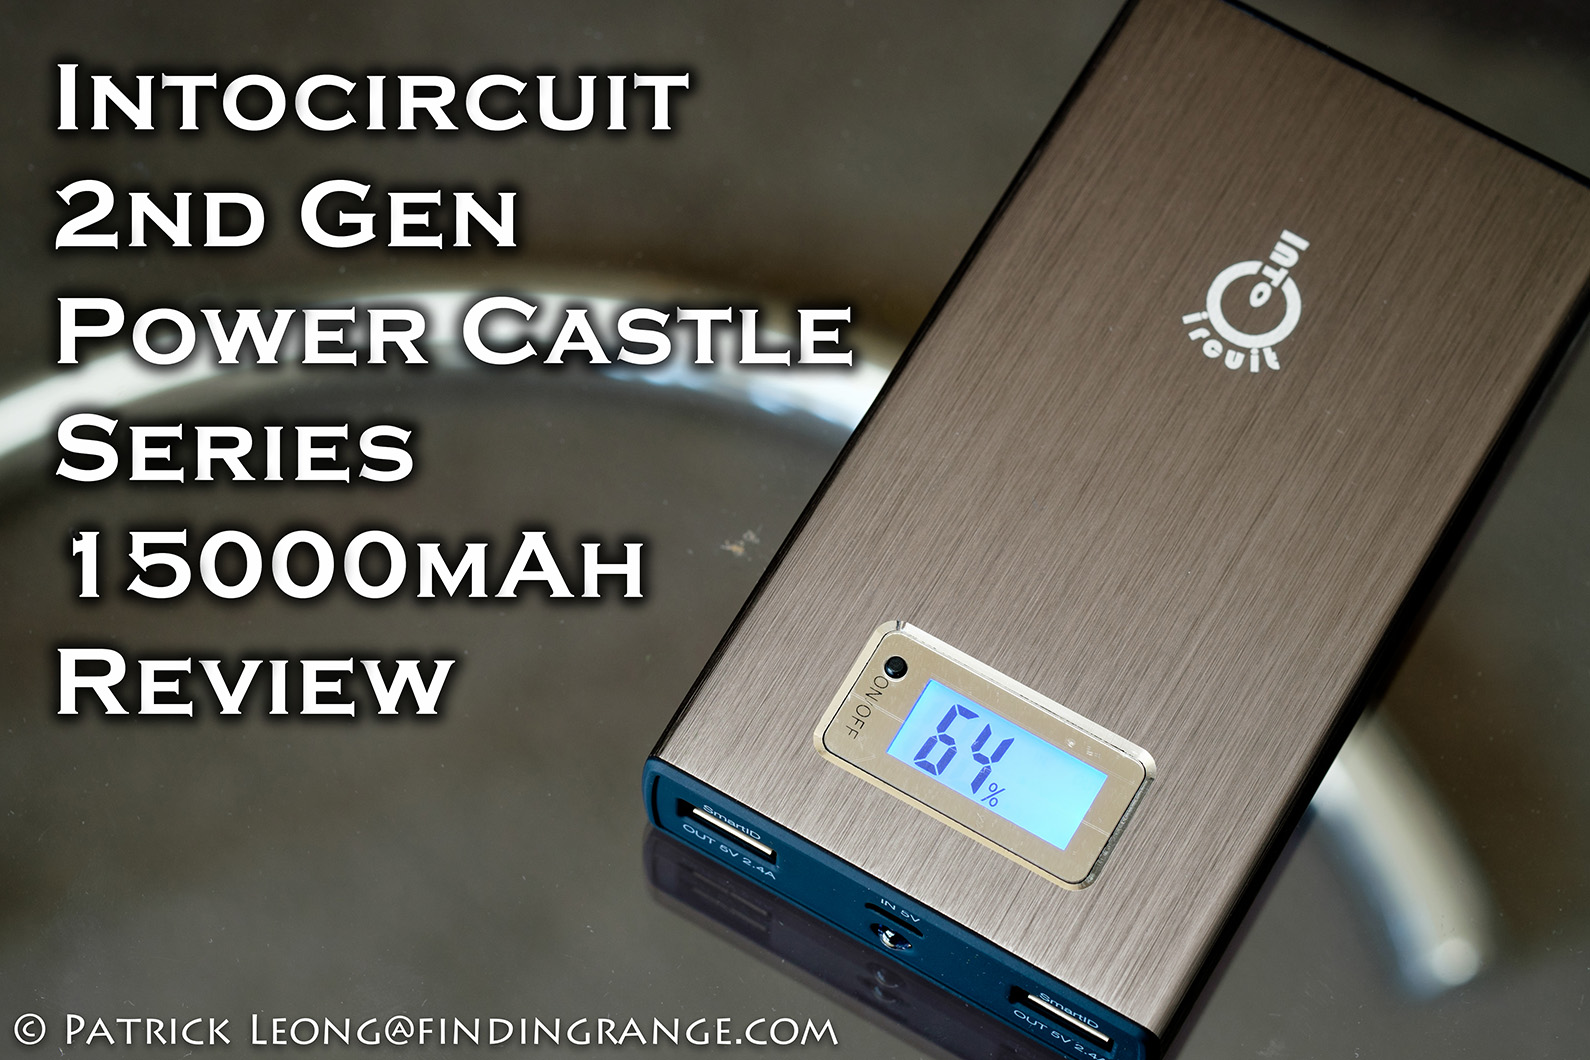 Intocircuit-2nd-Gen-Power-Castle-Series-15000mAh-External-Battery-Pack-Power-Bank-Review-4